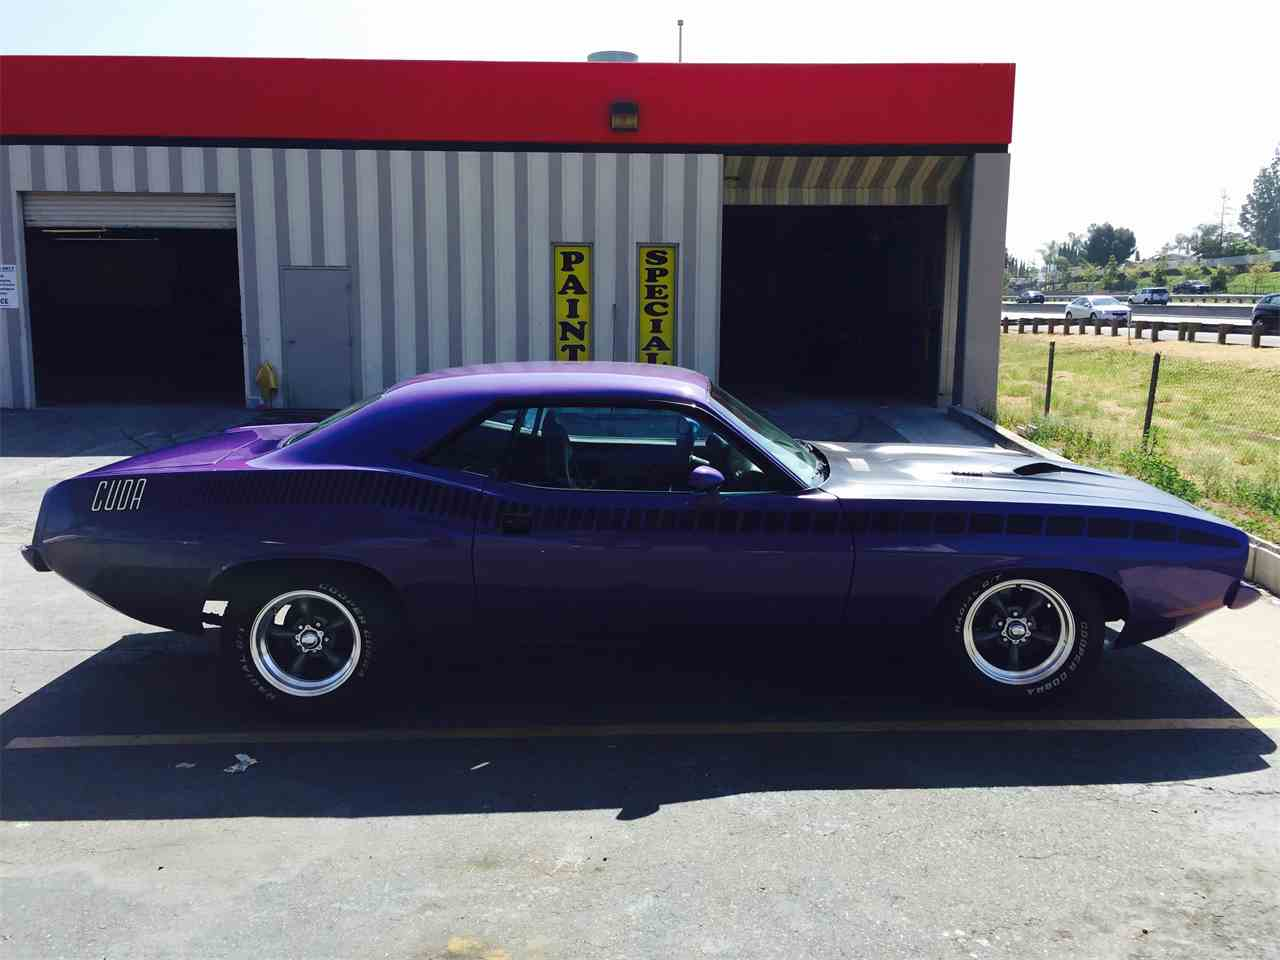 Large Picture of '74 Plymouth Cuda located in California Offered by a Private Seller - BI38